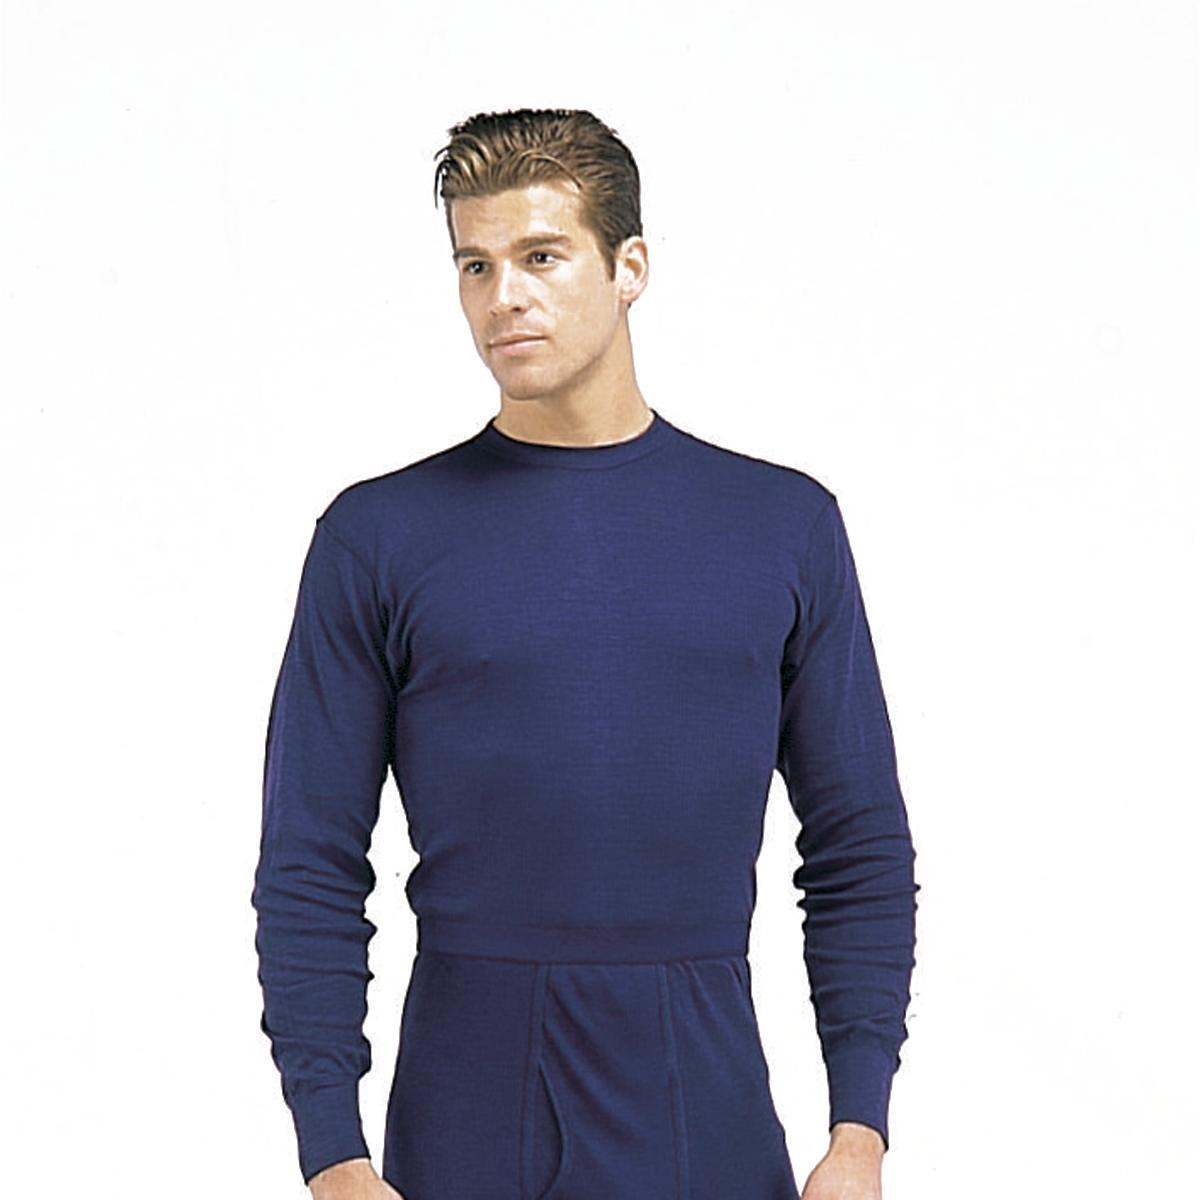 Indera Blue Polypropylene Thermal Long Underwear Tops, Shirts by Indera Mills